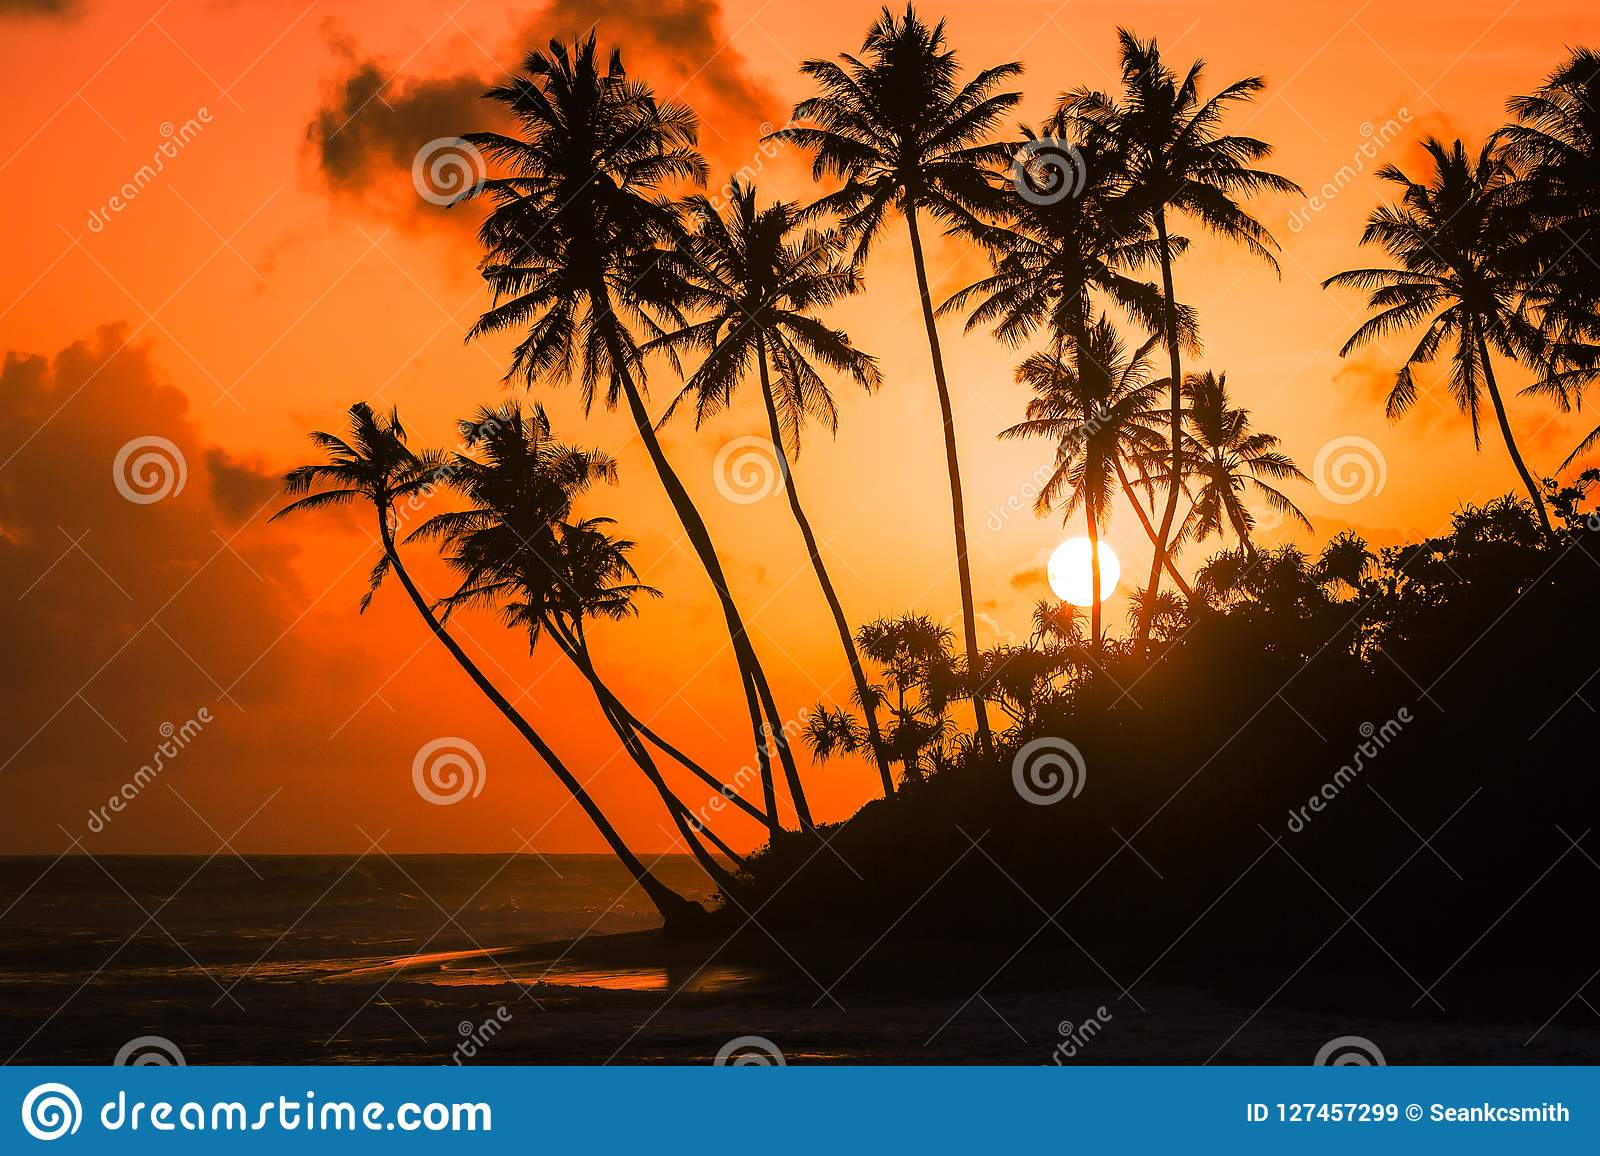 Sunset views in Galle along the coastline